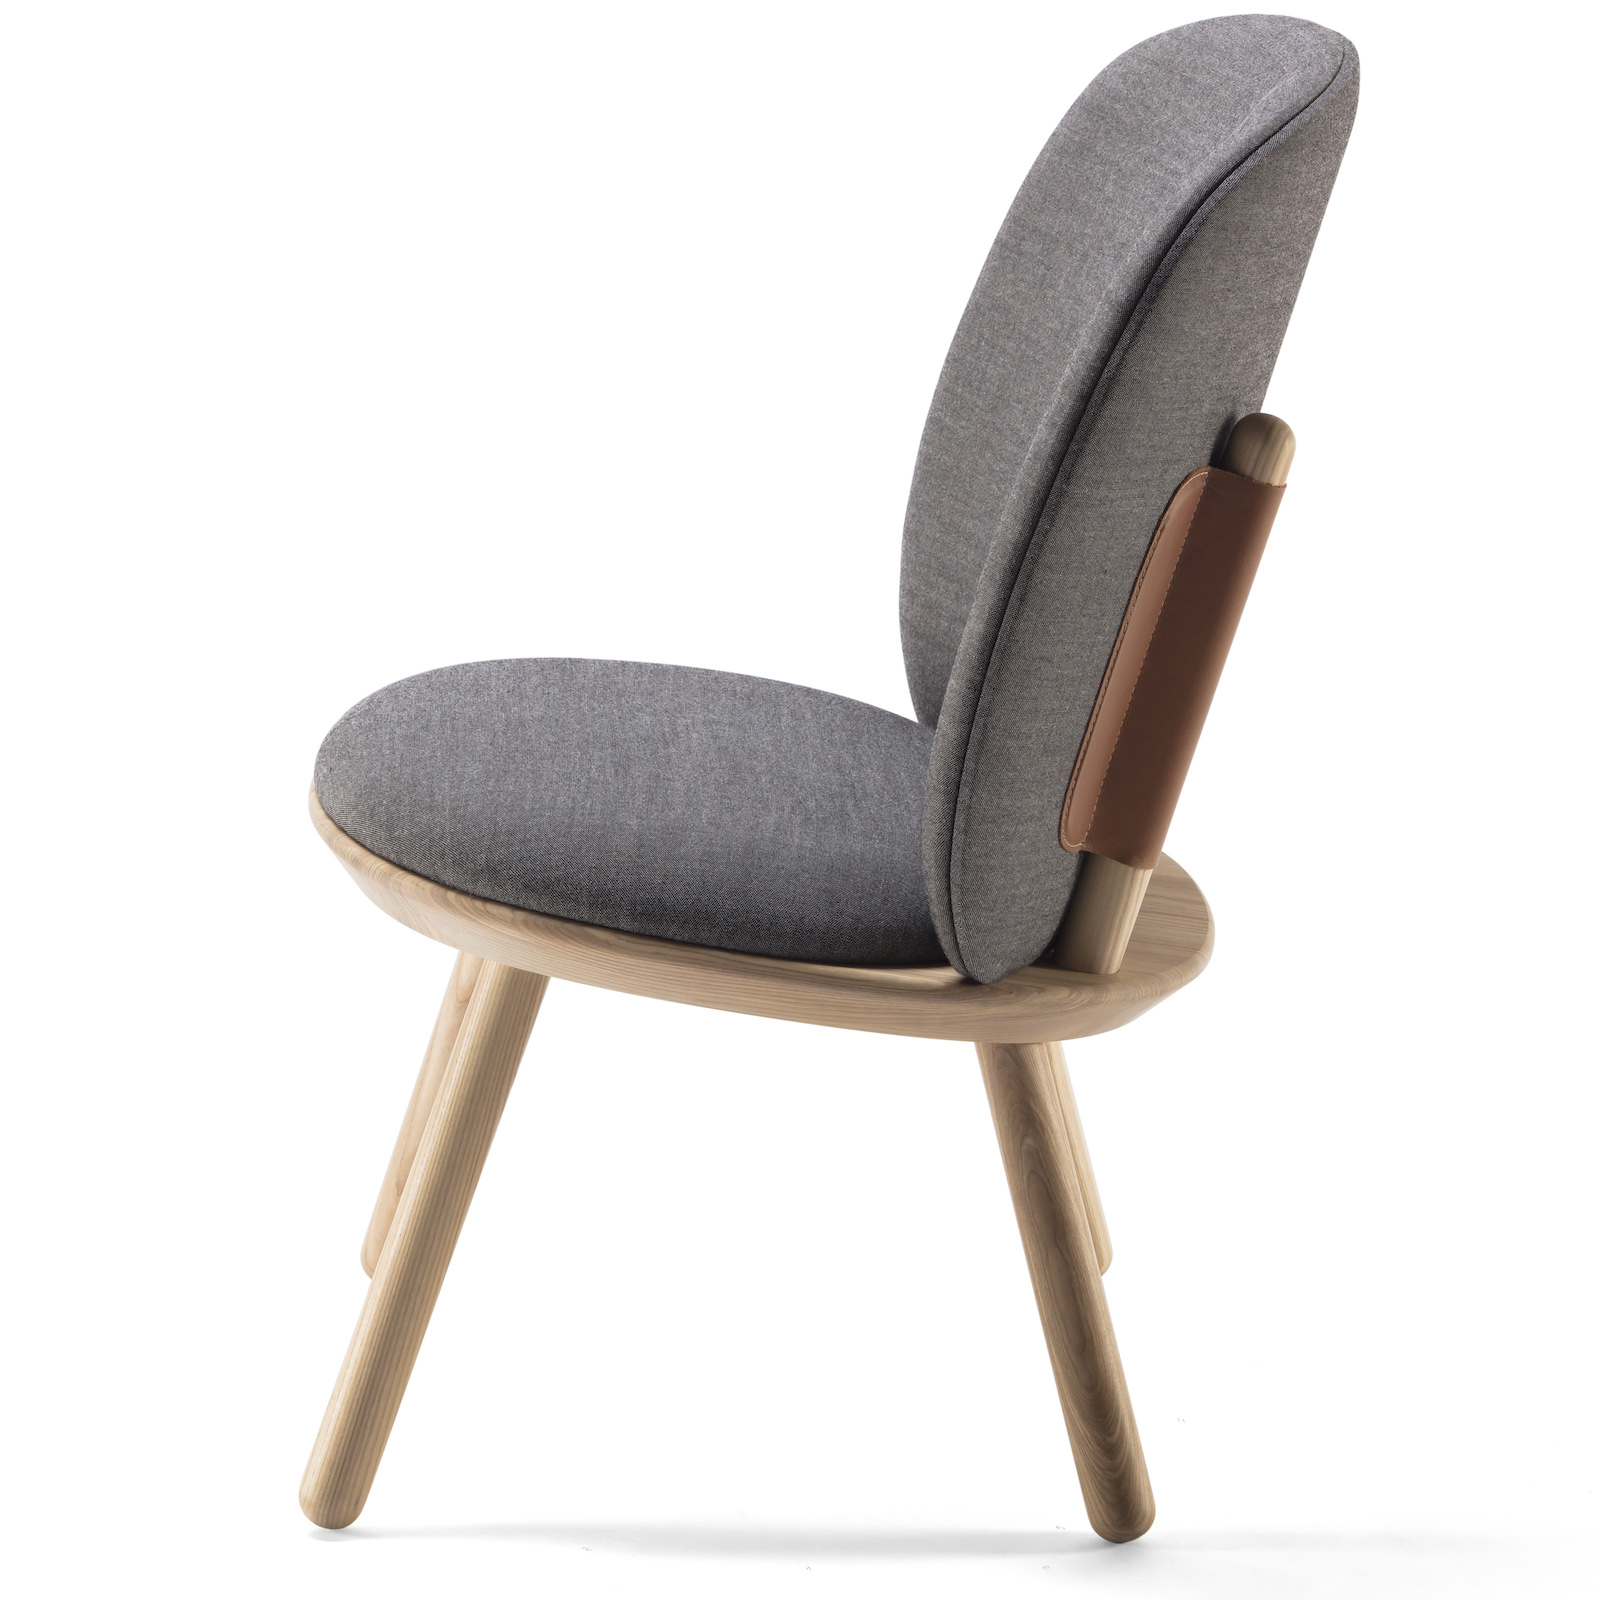 Naïve Low Chair